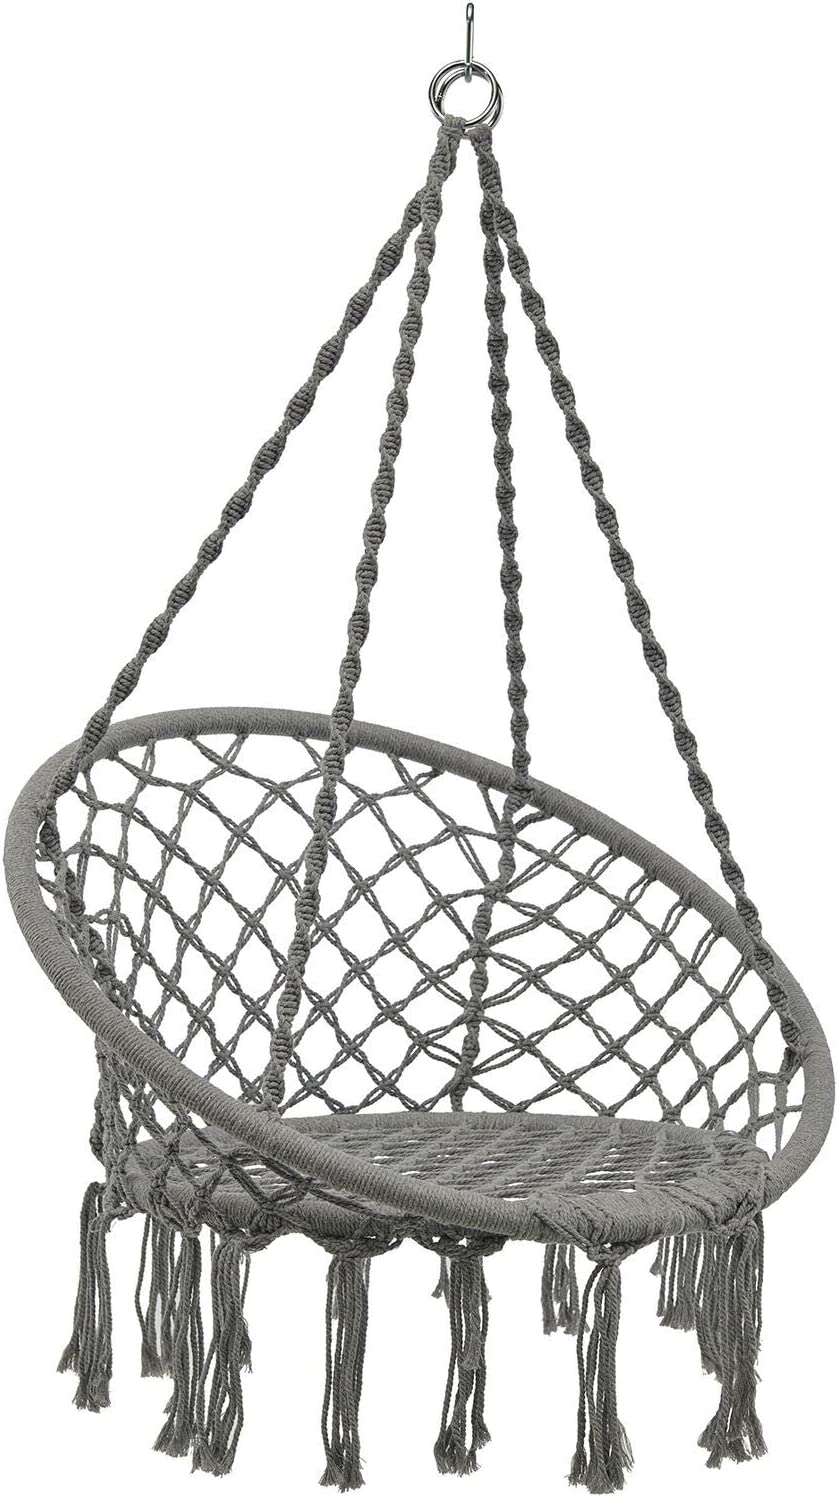 GG Hammock Chair Max 83% OFF Swing Hanging Tree Outdoo Max 83% OFF Seat Net Rope